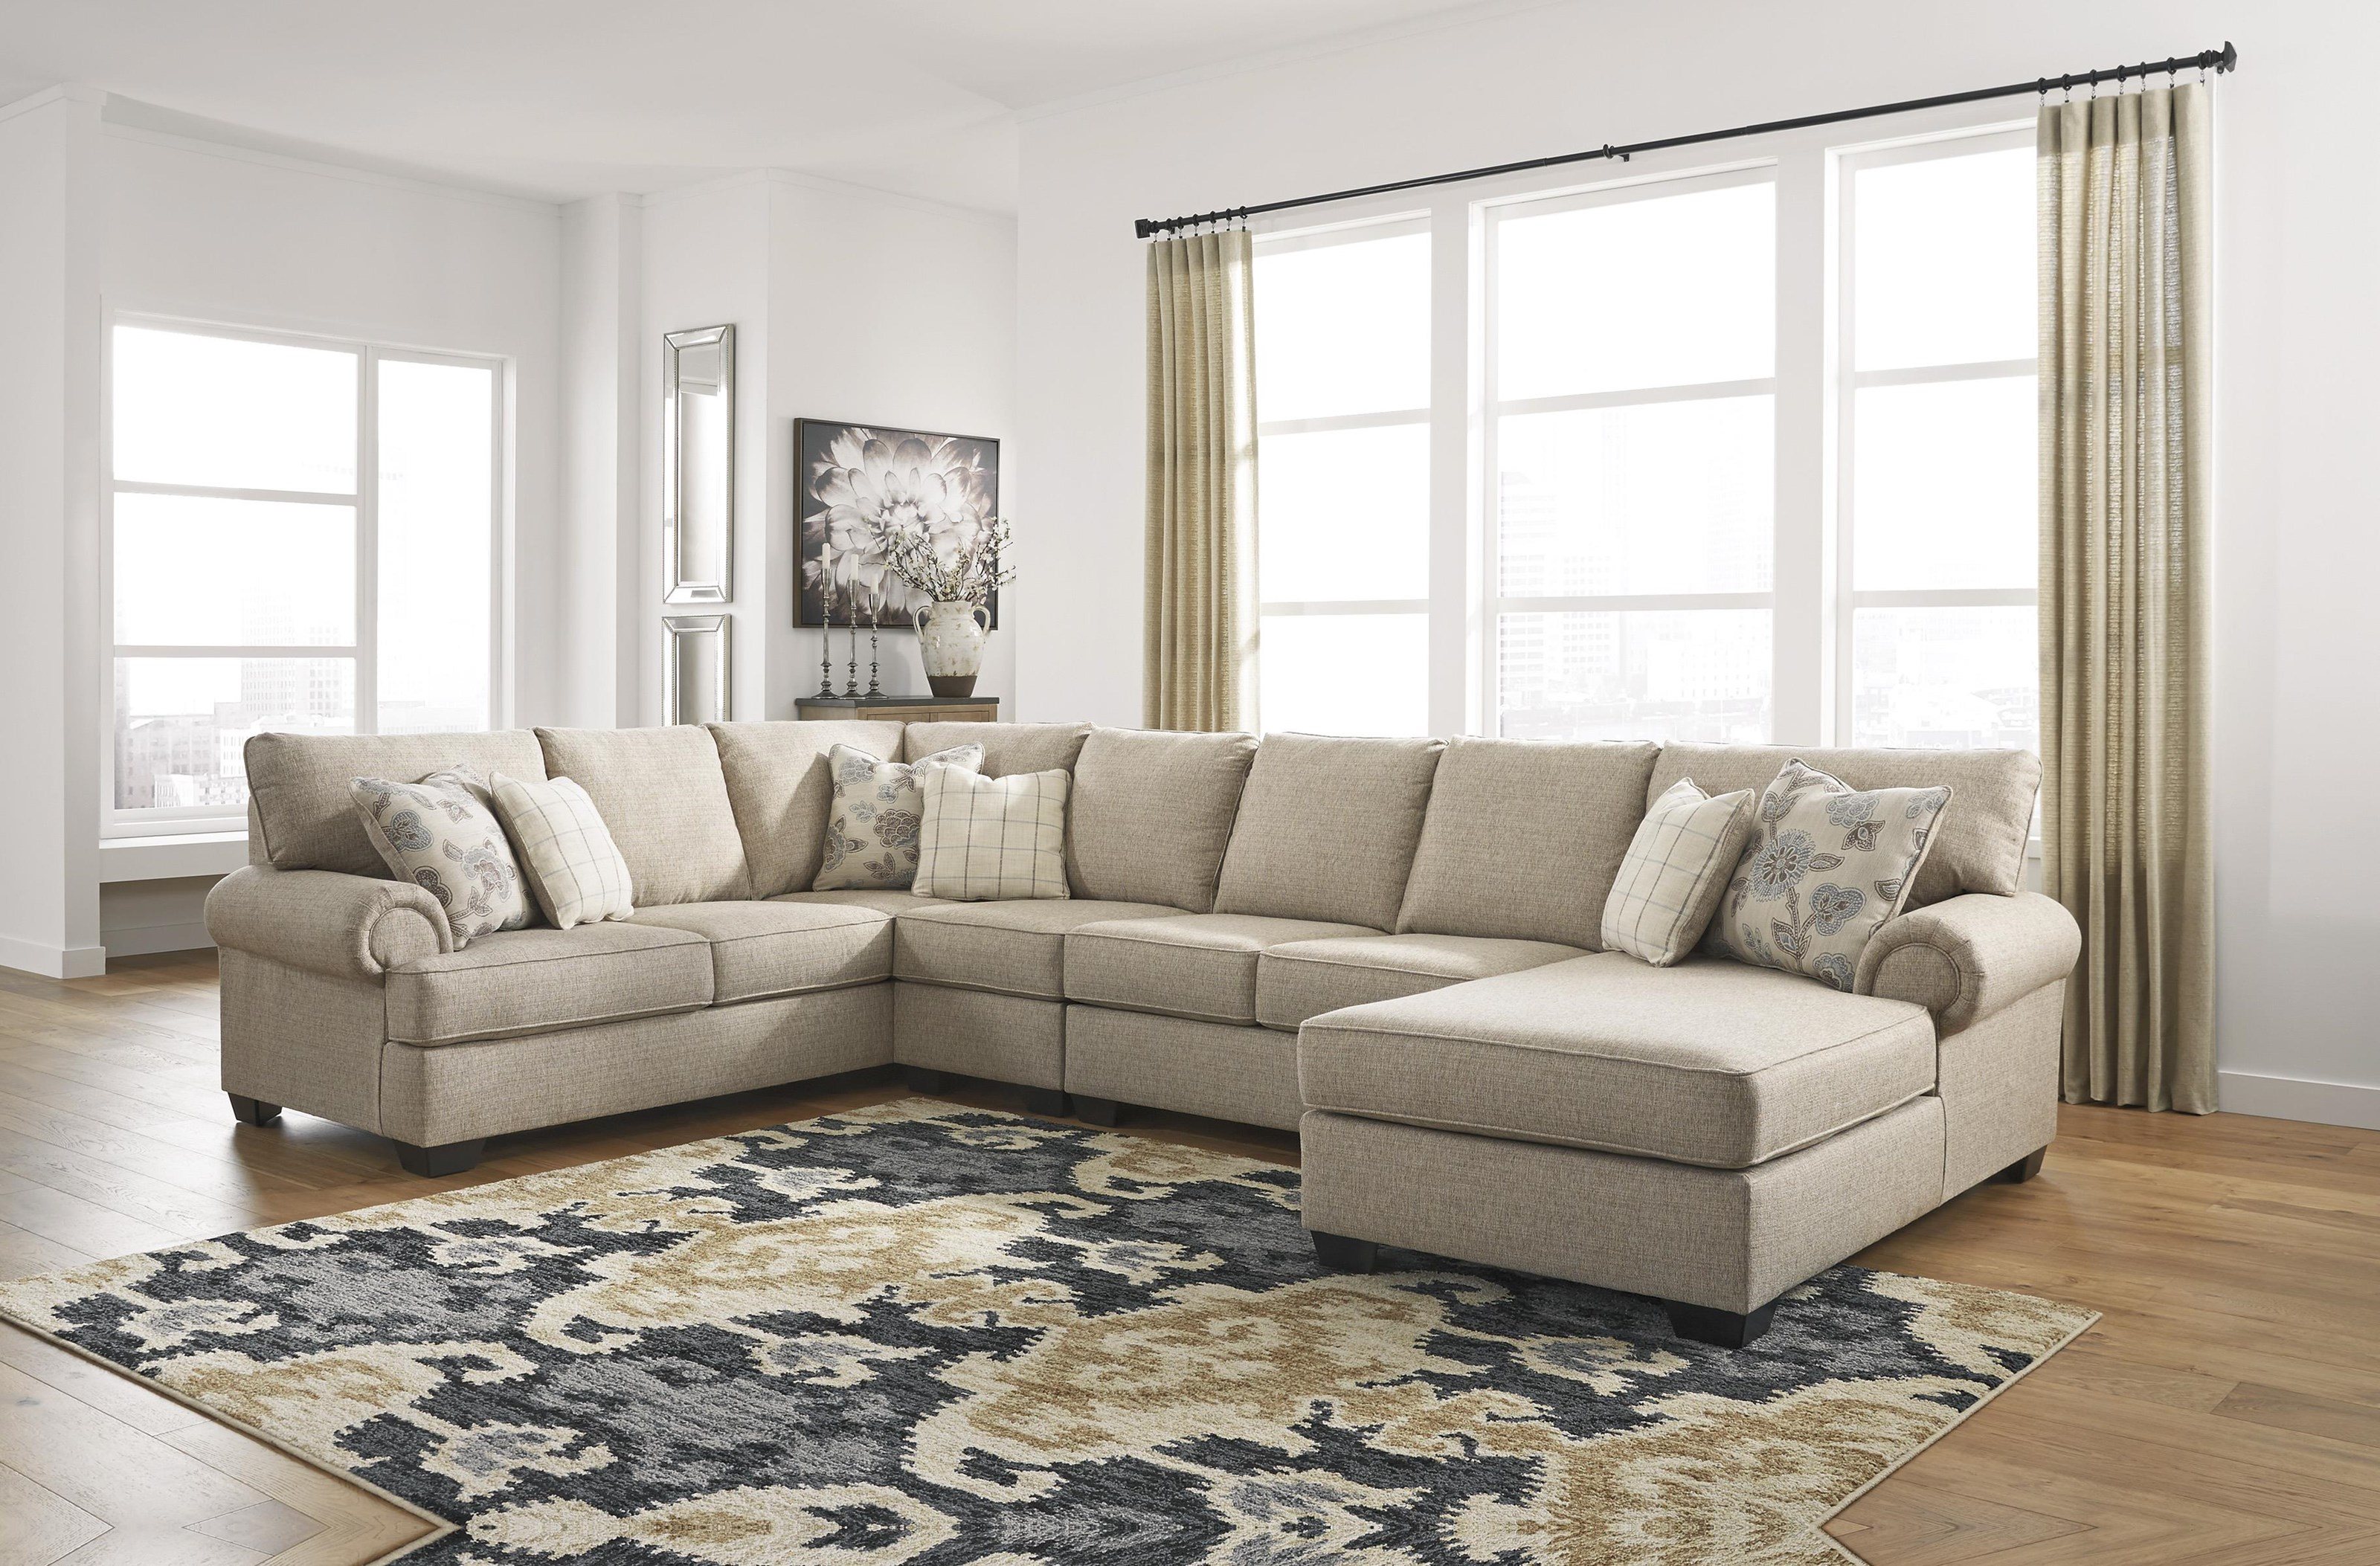 Baceno 4 Piece Sectional Chaise Sofa by Ashley Furniture at Sam Levitz Outlet